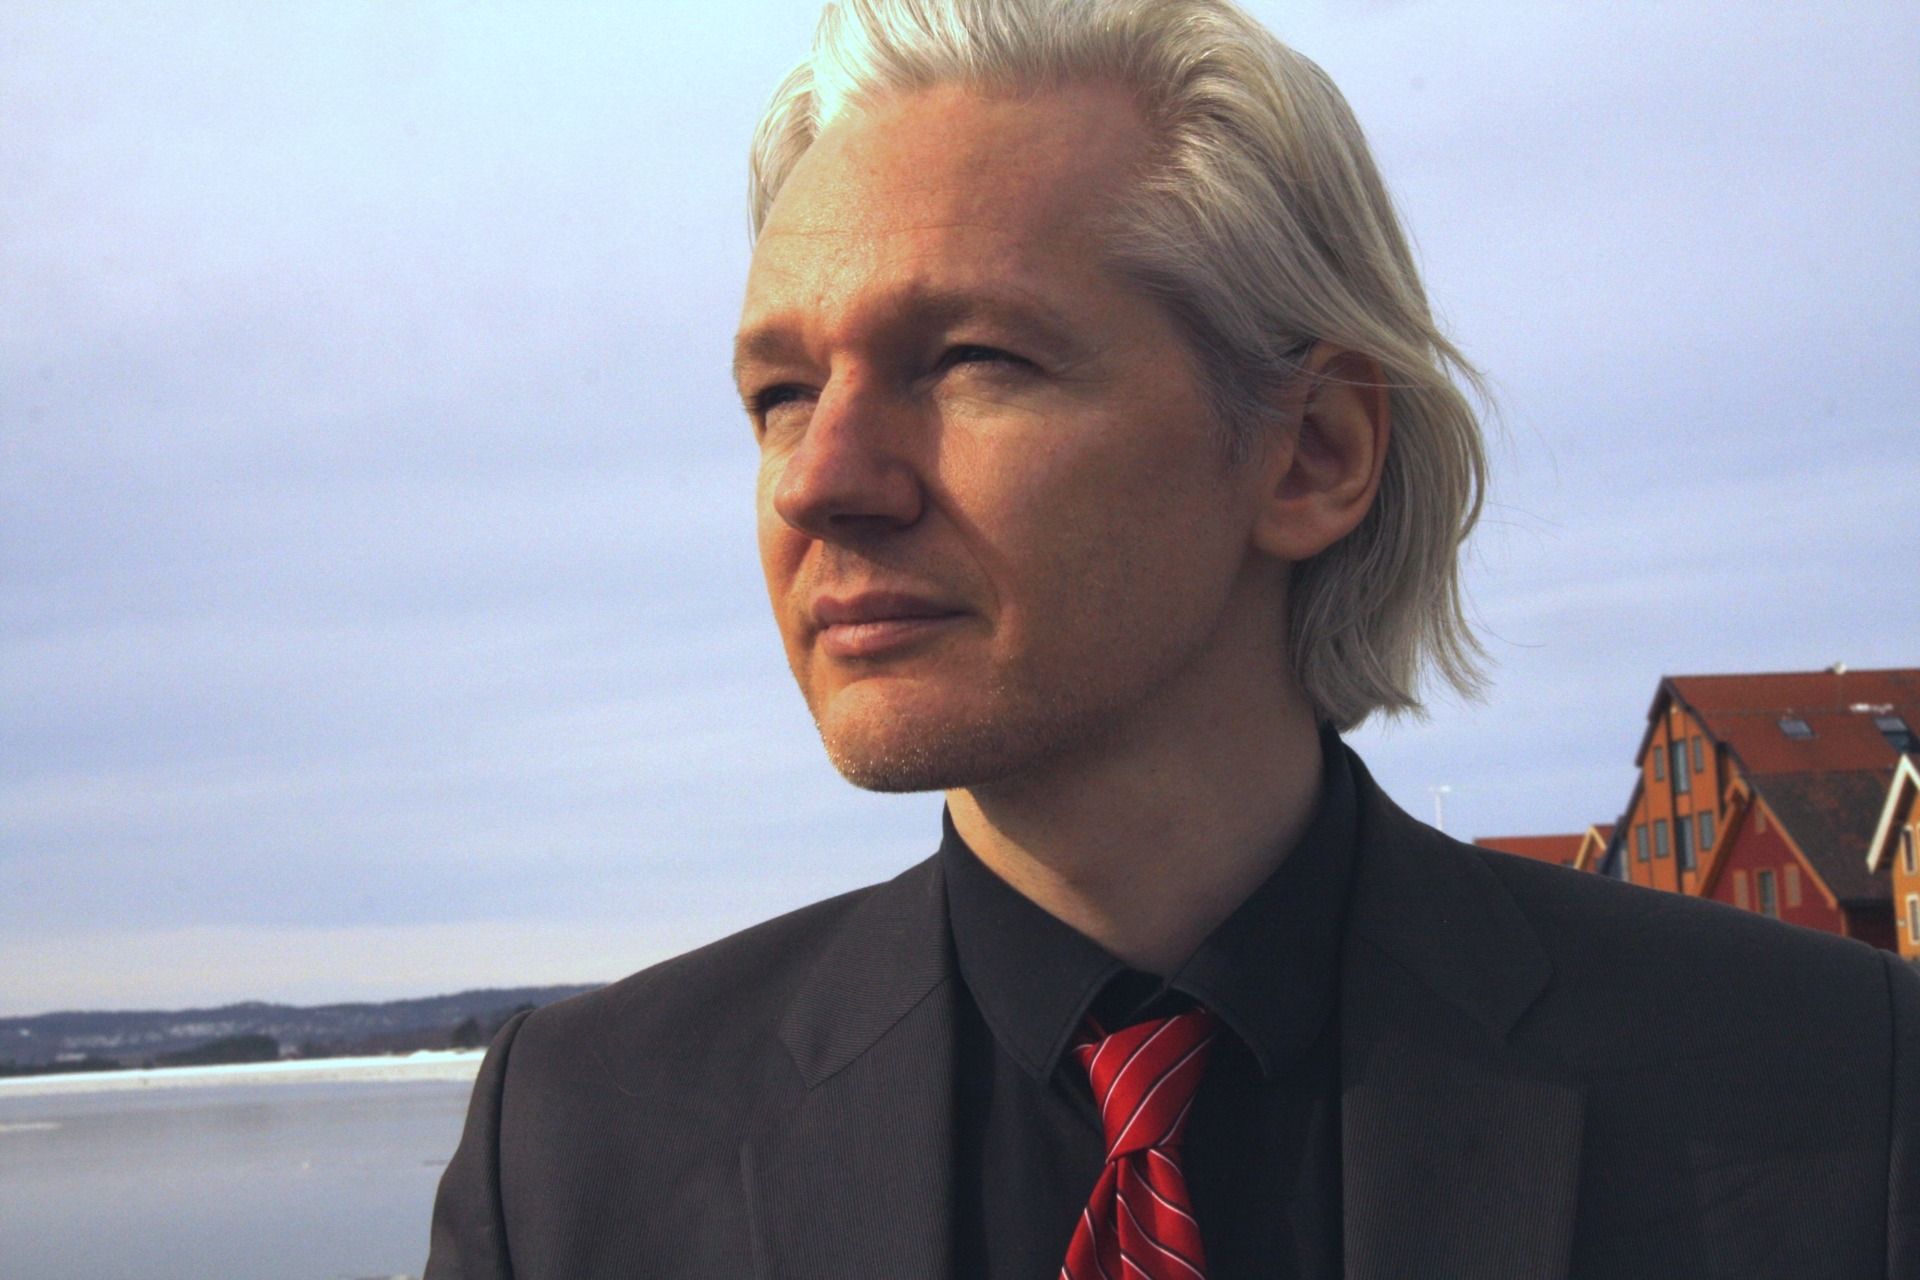 In this video, Tim Dawson, Executive Member of the National Union of Journalists of Britain and Ireland, explains why Julian Assange should be released now